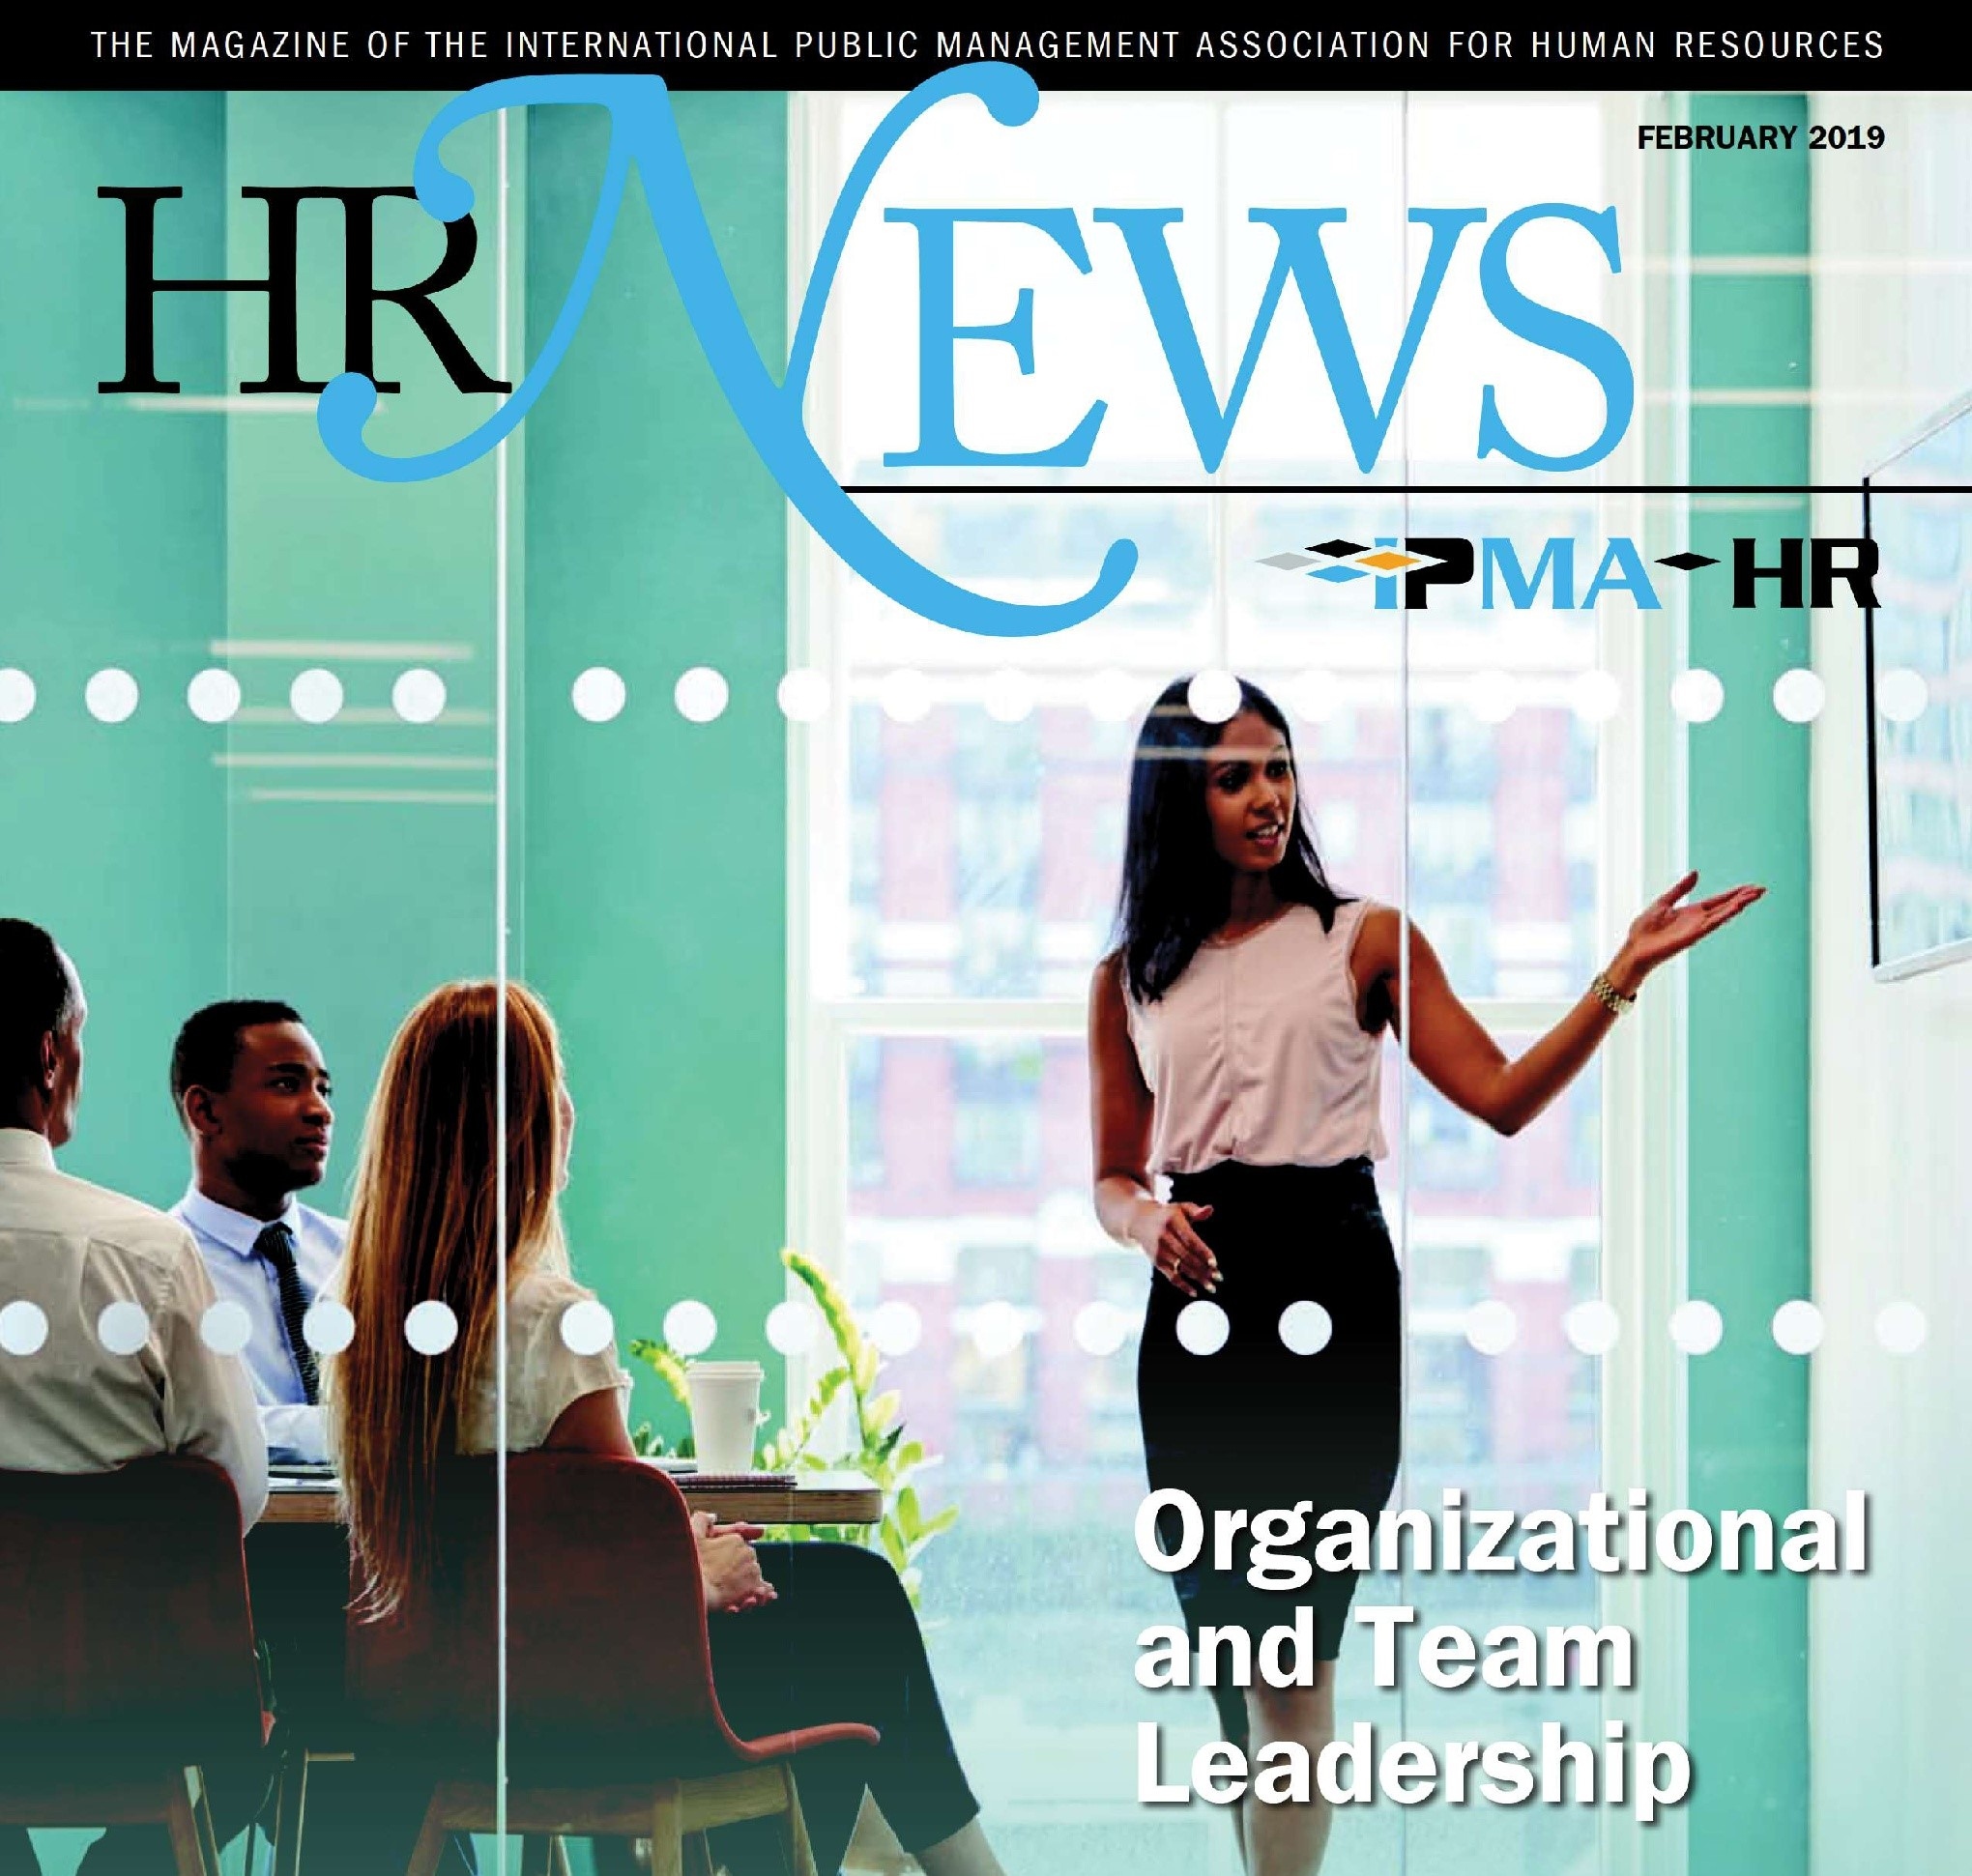 Feb19_HR-News_cover